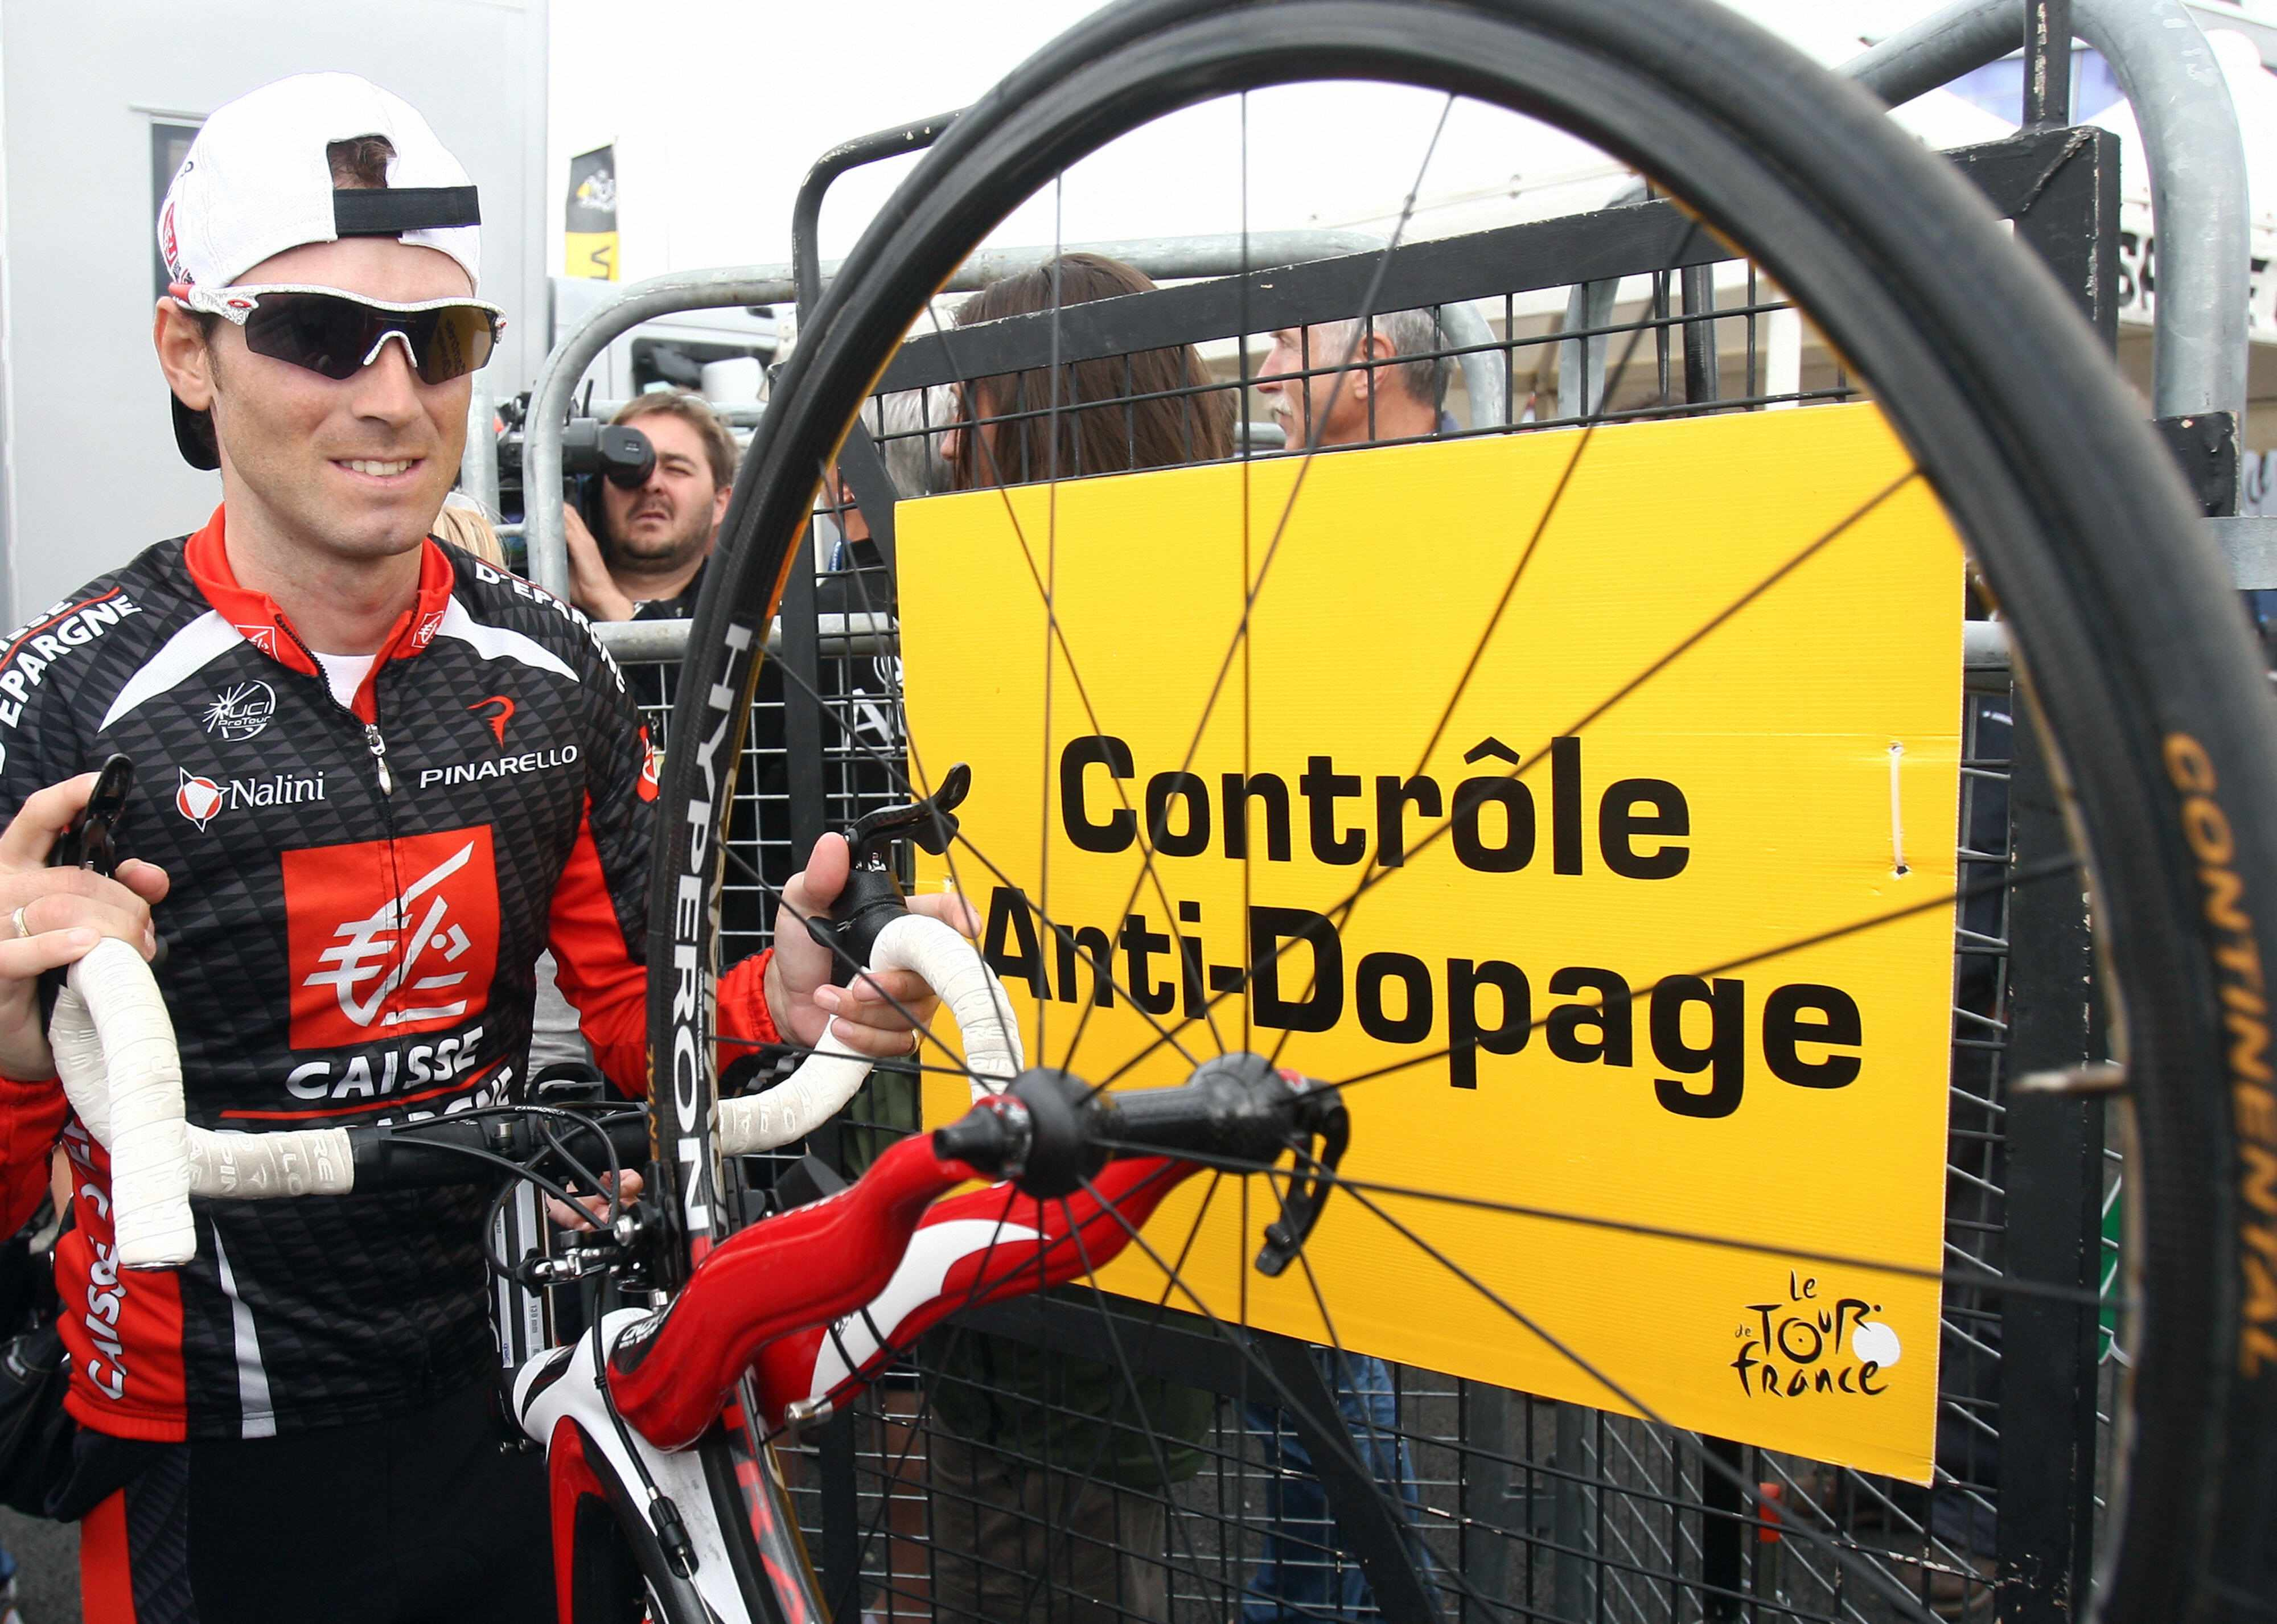 Alejandro Valverde leaves a doping control at the Tour de France